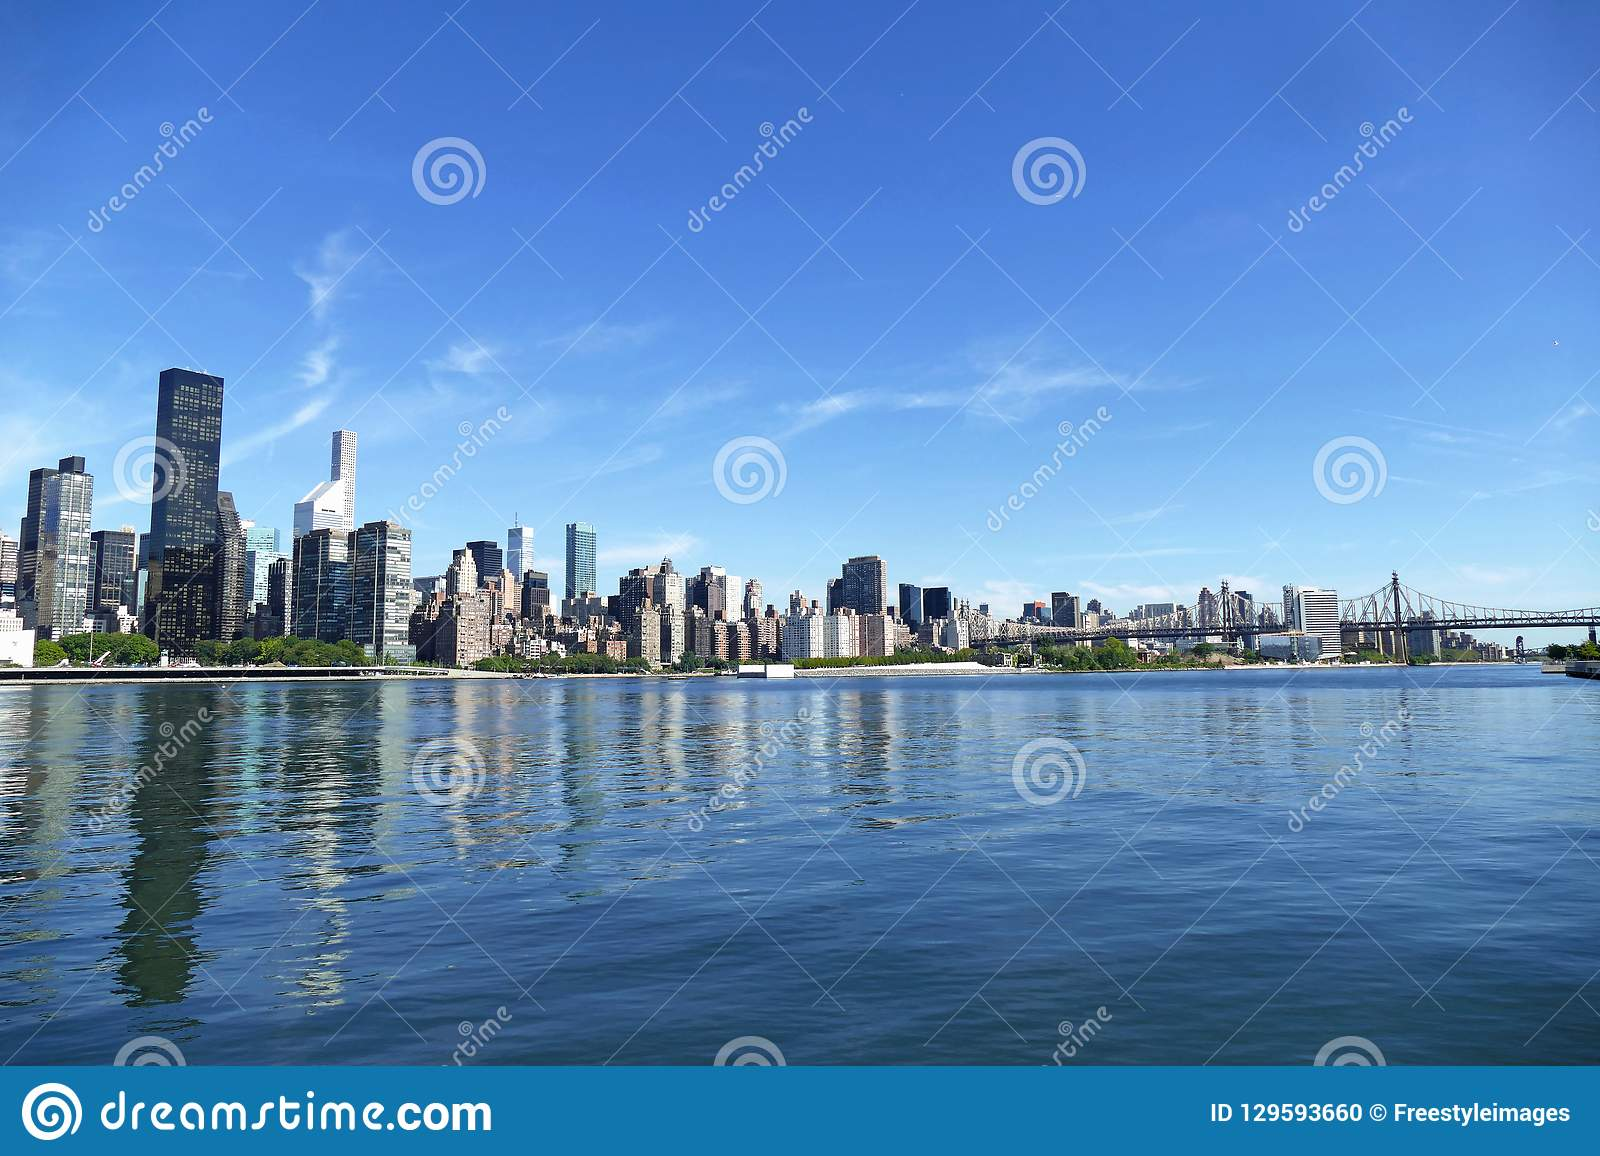 New York City Skyline, East River and Manhattan, New York waterfront with Queensboro Bridge in background